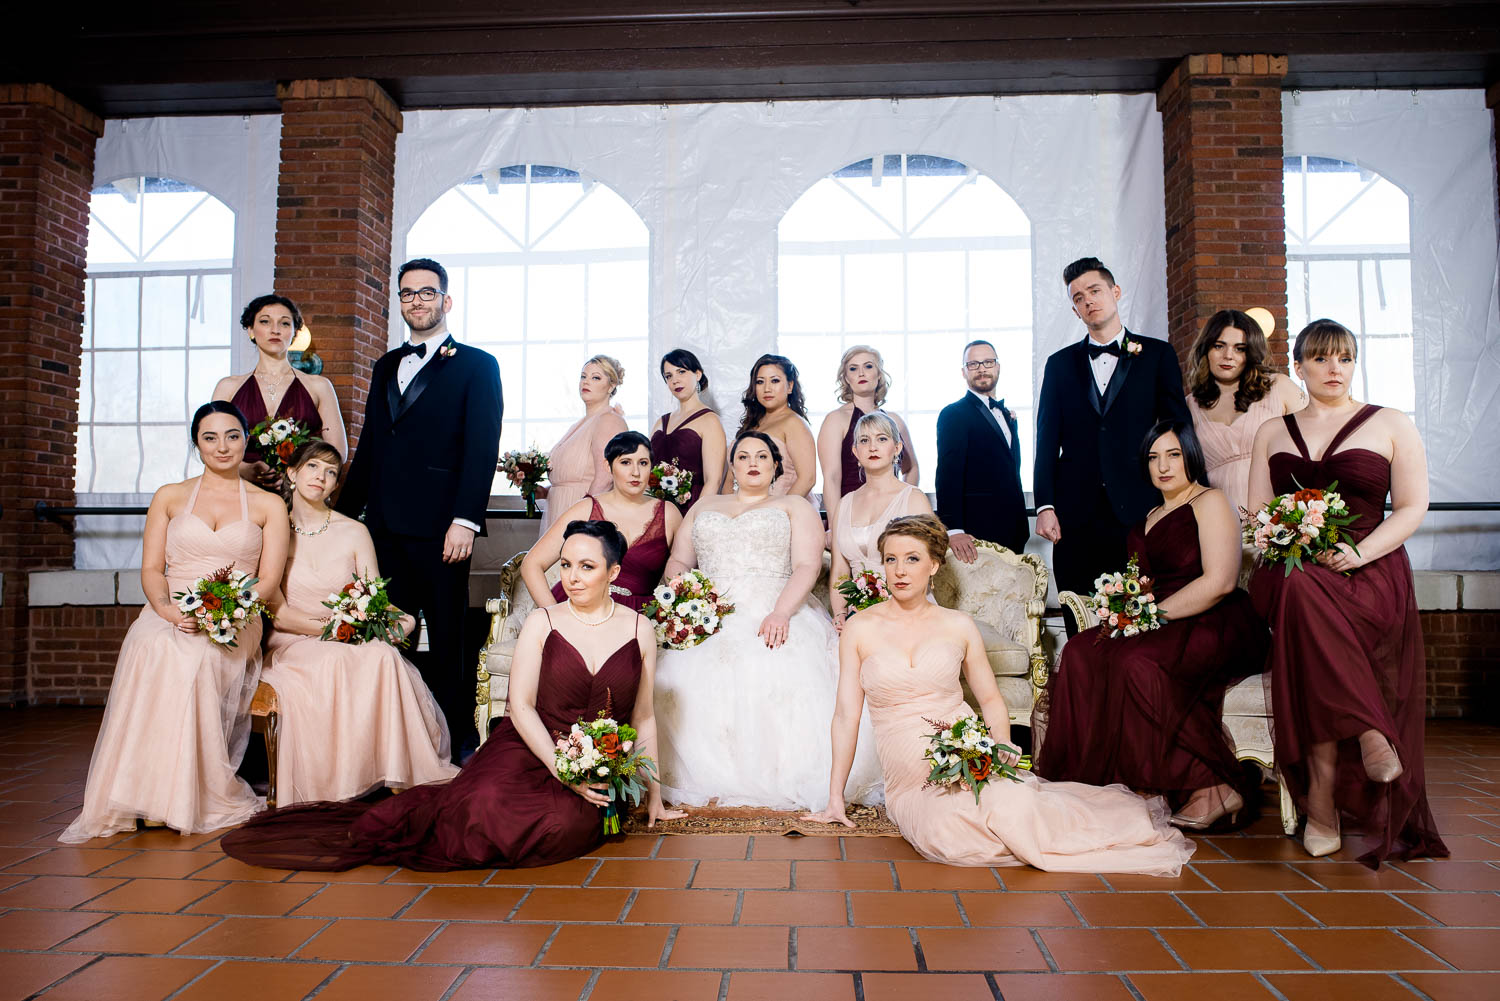 Creative bridal party wedding portrait at Cafe Brauer.